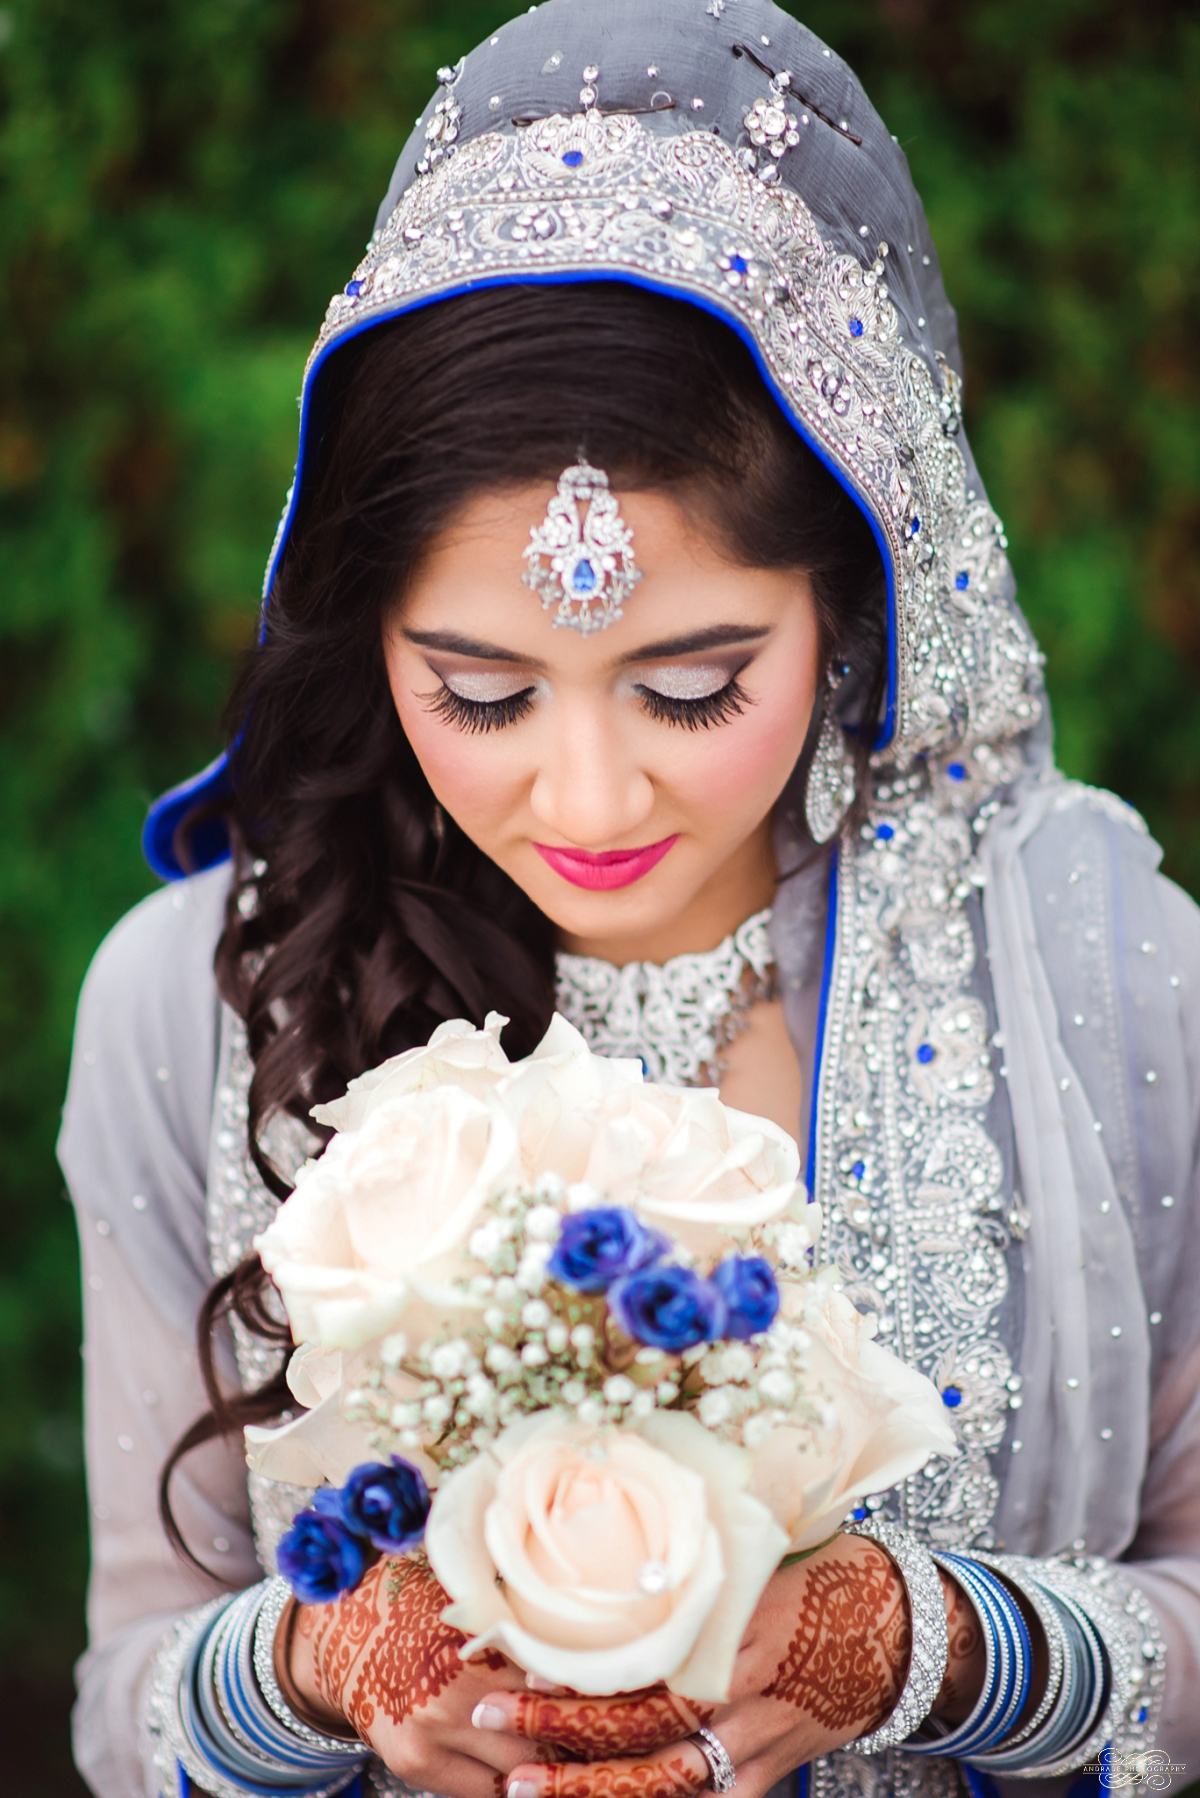 Umer + Abeer The Empress Banquet Wedding Photography Addison Illinois_0048.jpg